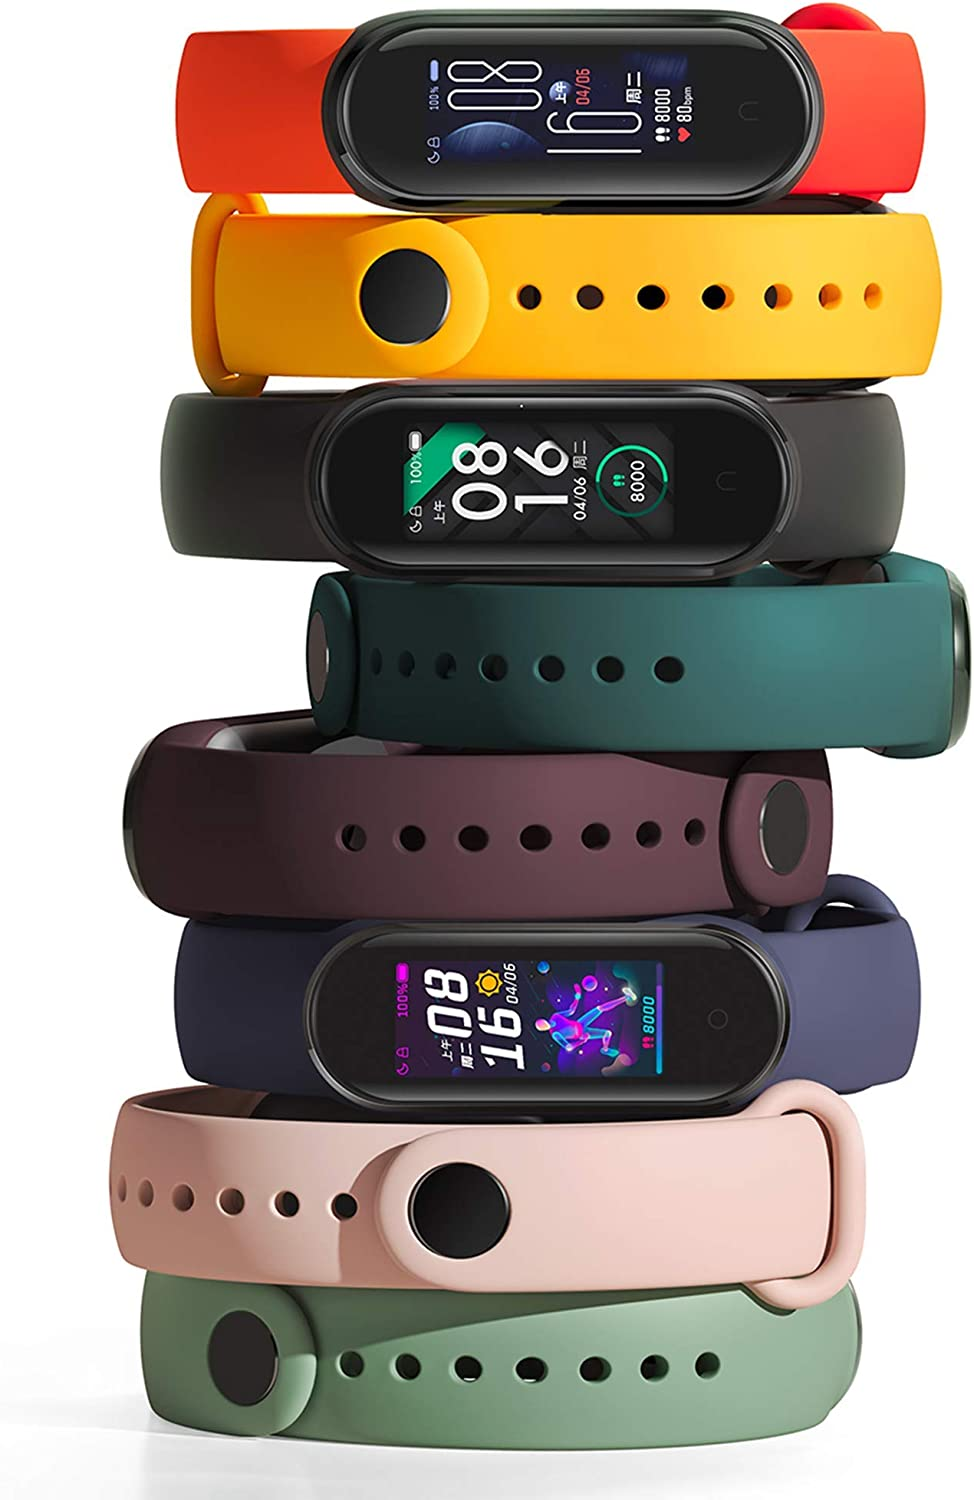 Xiaomi Mi Band 5 Smart Band Bracelet Magnetic Charge 4 Color 1.1 Touch Screen Fitness Tracker 24h Heart Rate Sleep REM Nap Step Swim Sport Monitor 5ATM Waterproof Miband 5 Global Version Black